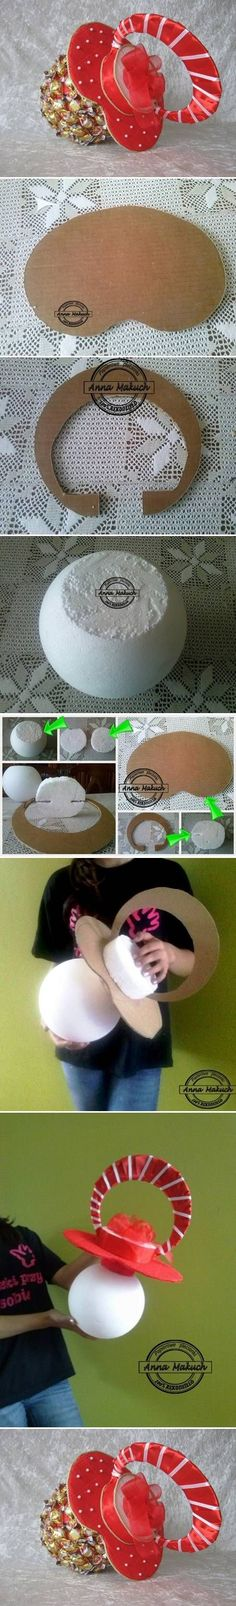 How to make Candy Pacifier for baby shower invitations step by step DIY tutorial instructions / How To Instructions